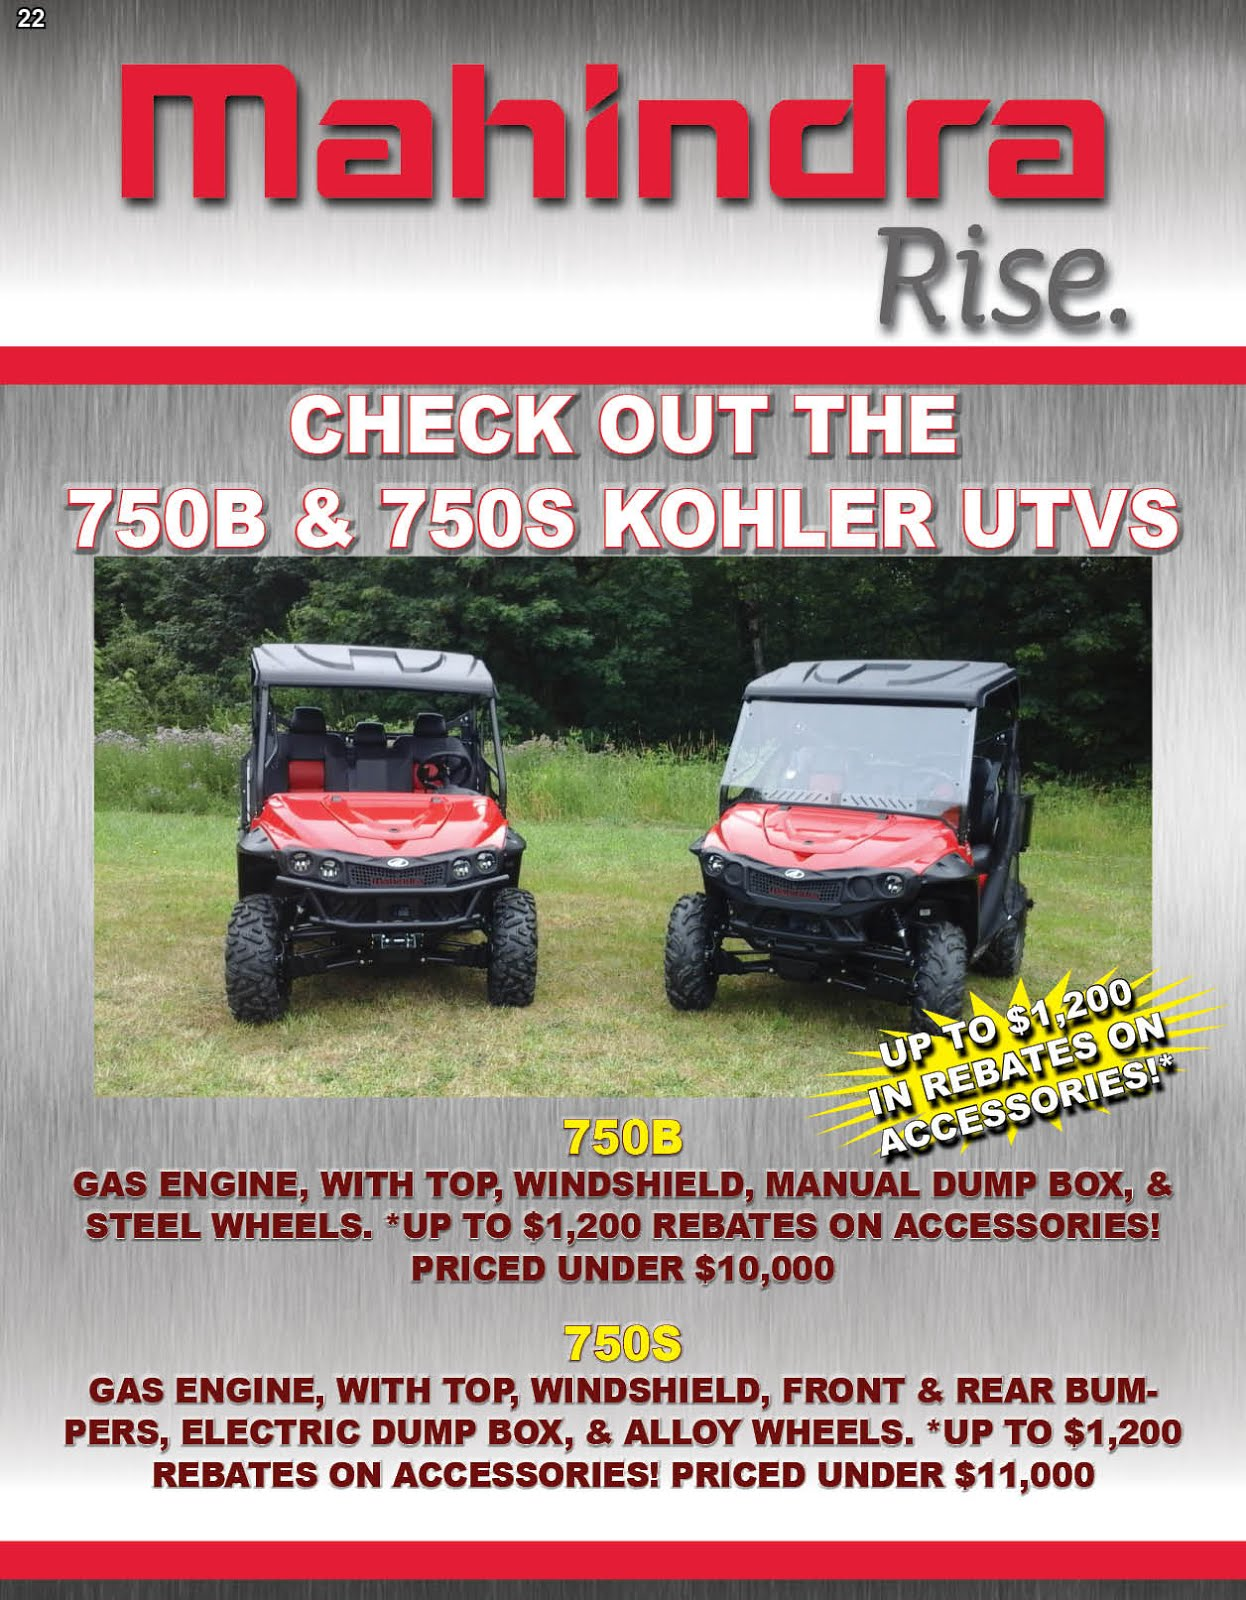 Boulder Equipment Has the Mahindra 750 UTVs On Sale!!